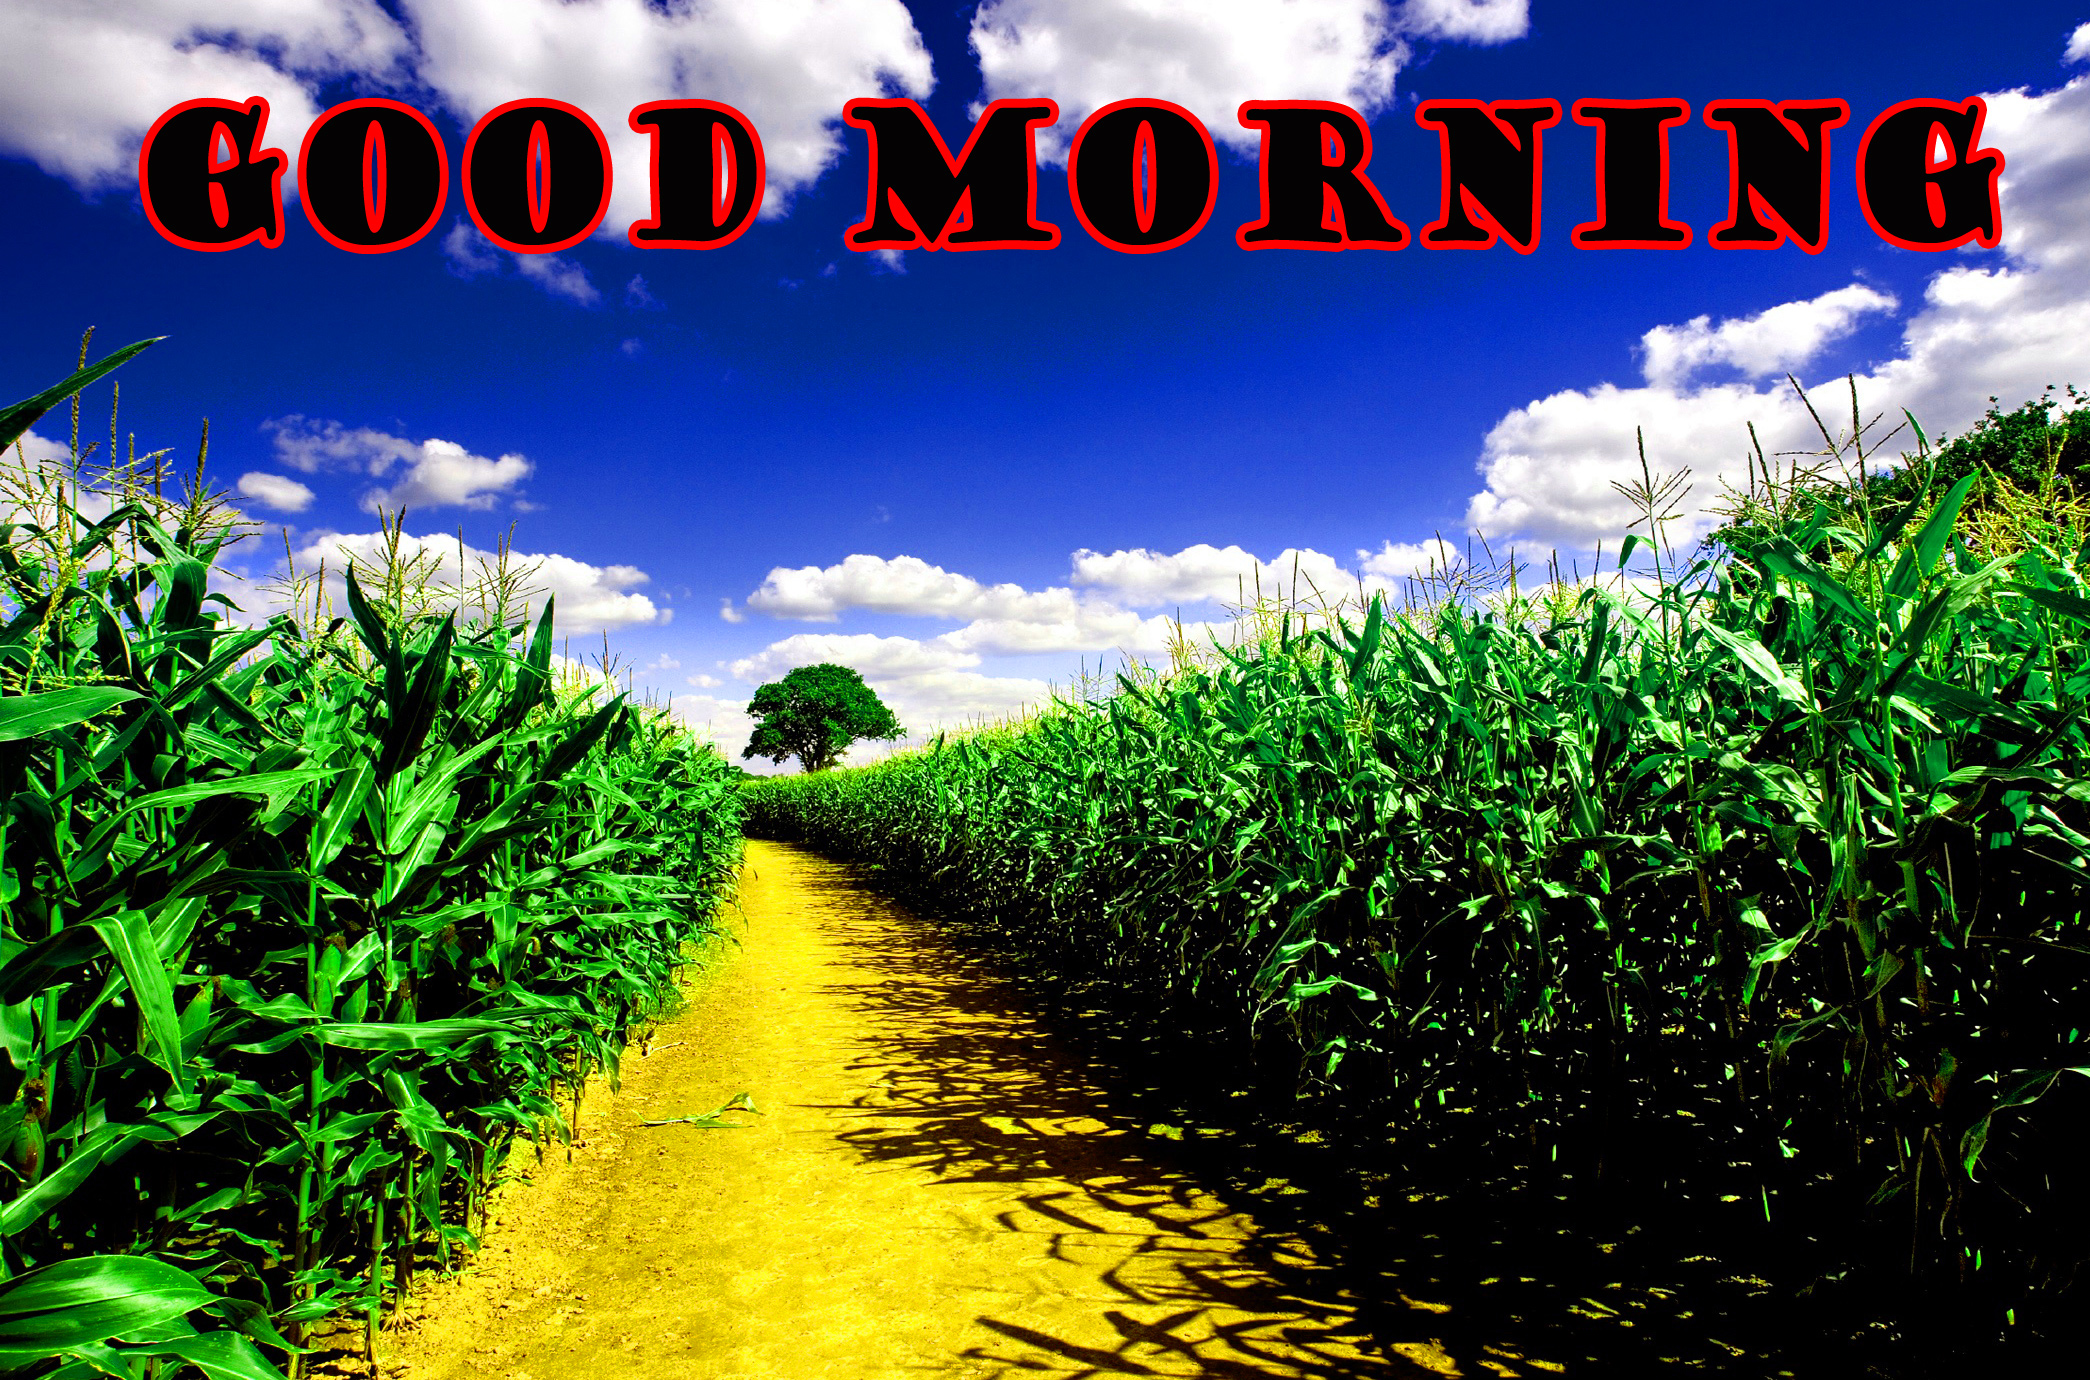 गुड मॉर्निंग New Wonderful Good Morning Wallpaper Images Download